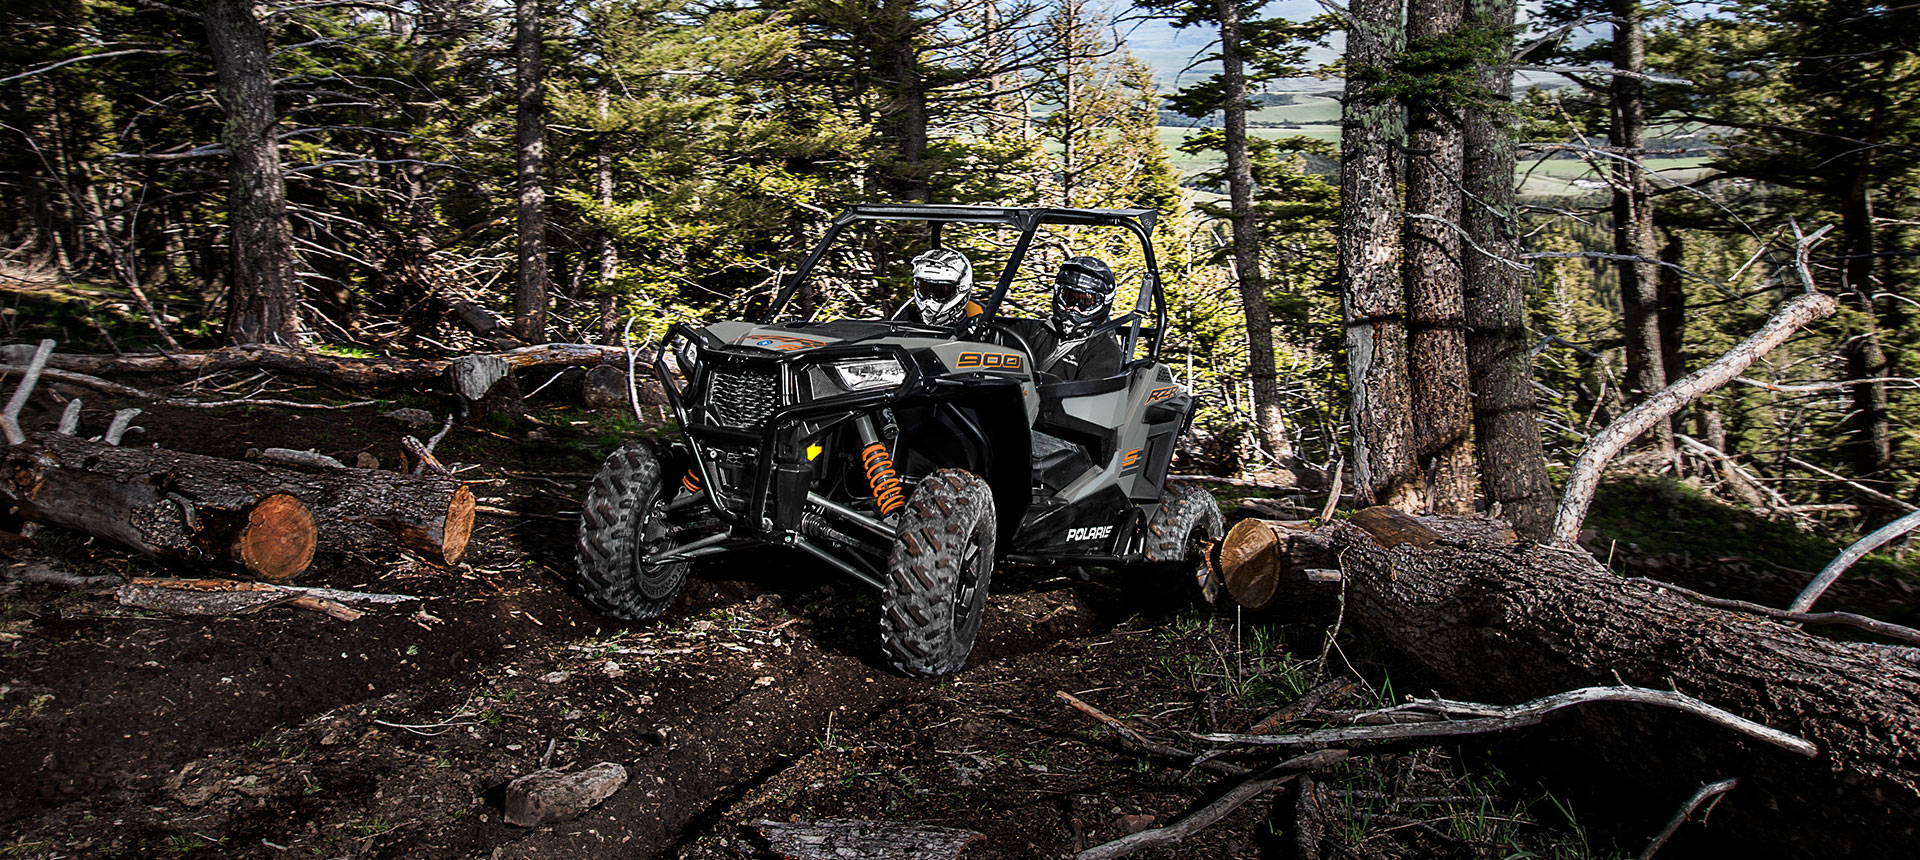 2019 Polaris RZR S 900 EPS in Homer, Alaska - Photo 2